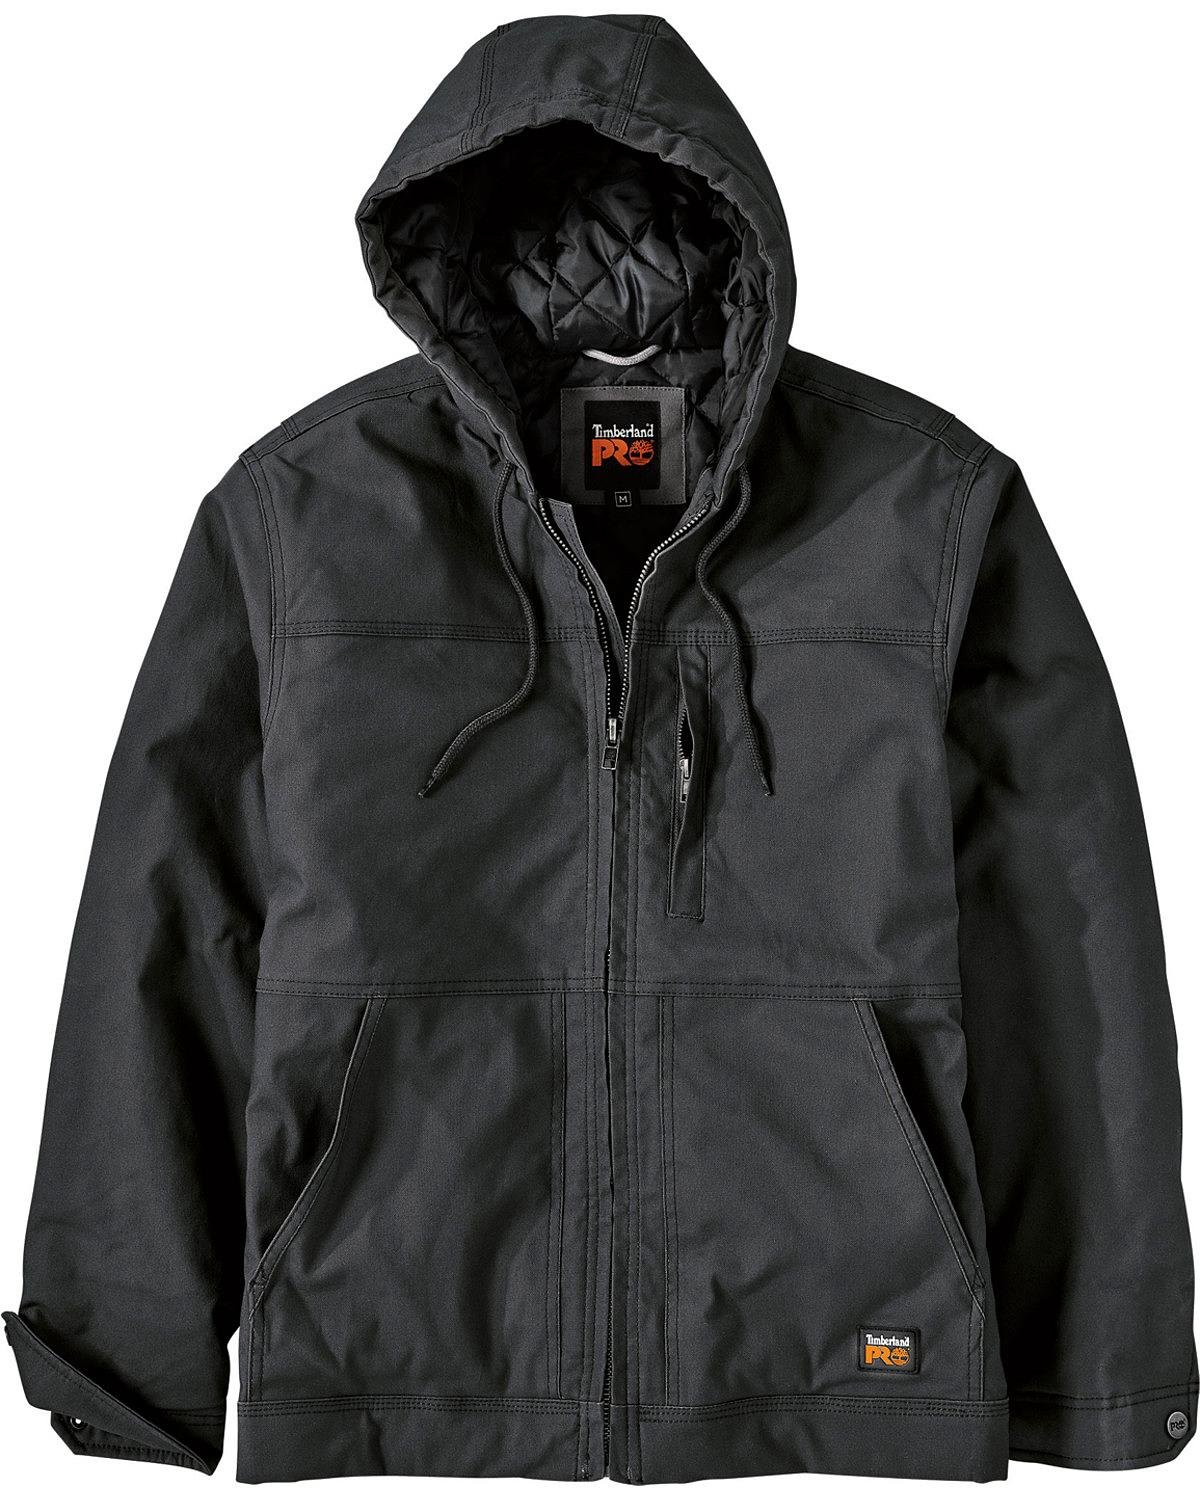 Timberland PRO Men's Big and Tall Baluster Insulated Hooded Work Jacket, Jet Black, X-Large